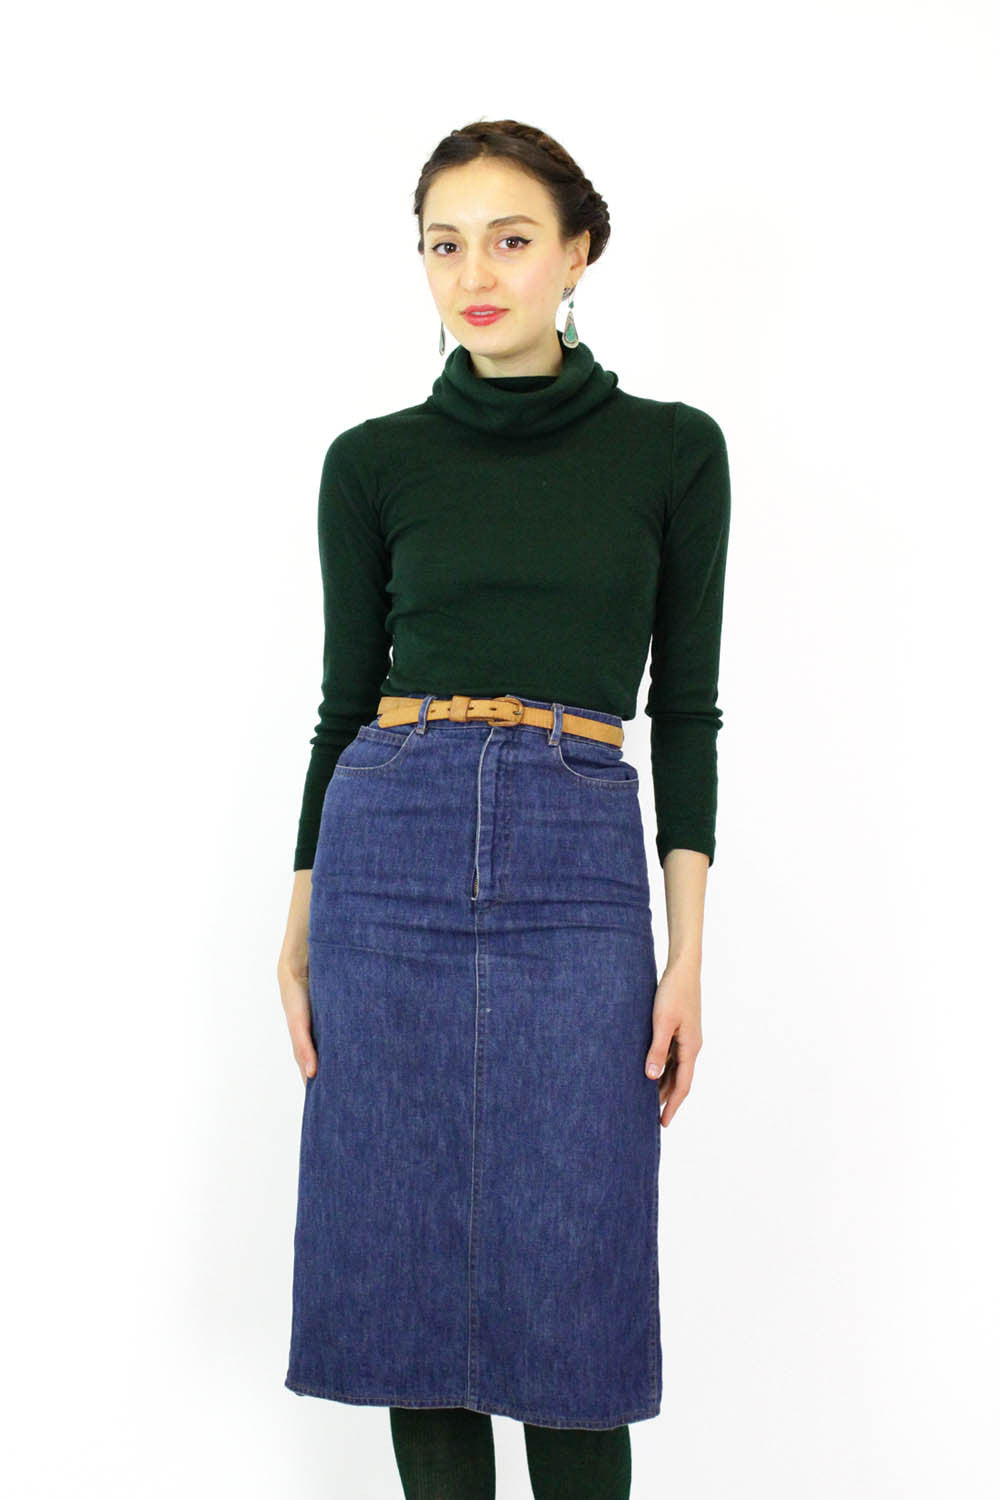 Pierre Cardin High Waist Denim Skirt XS